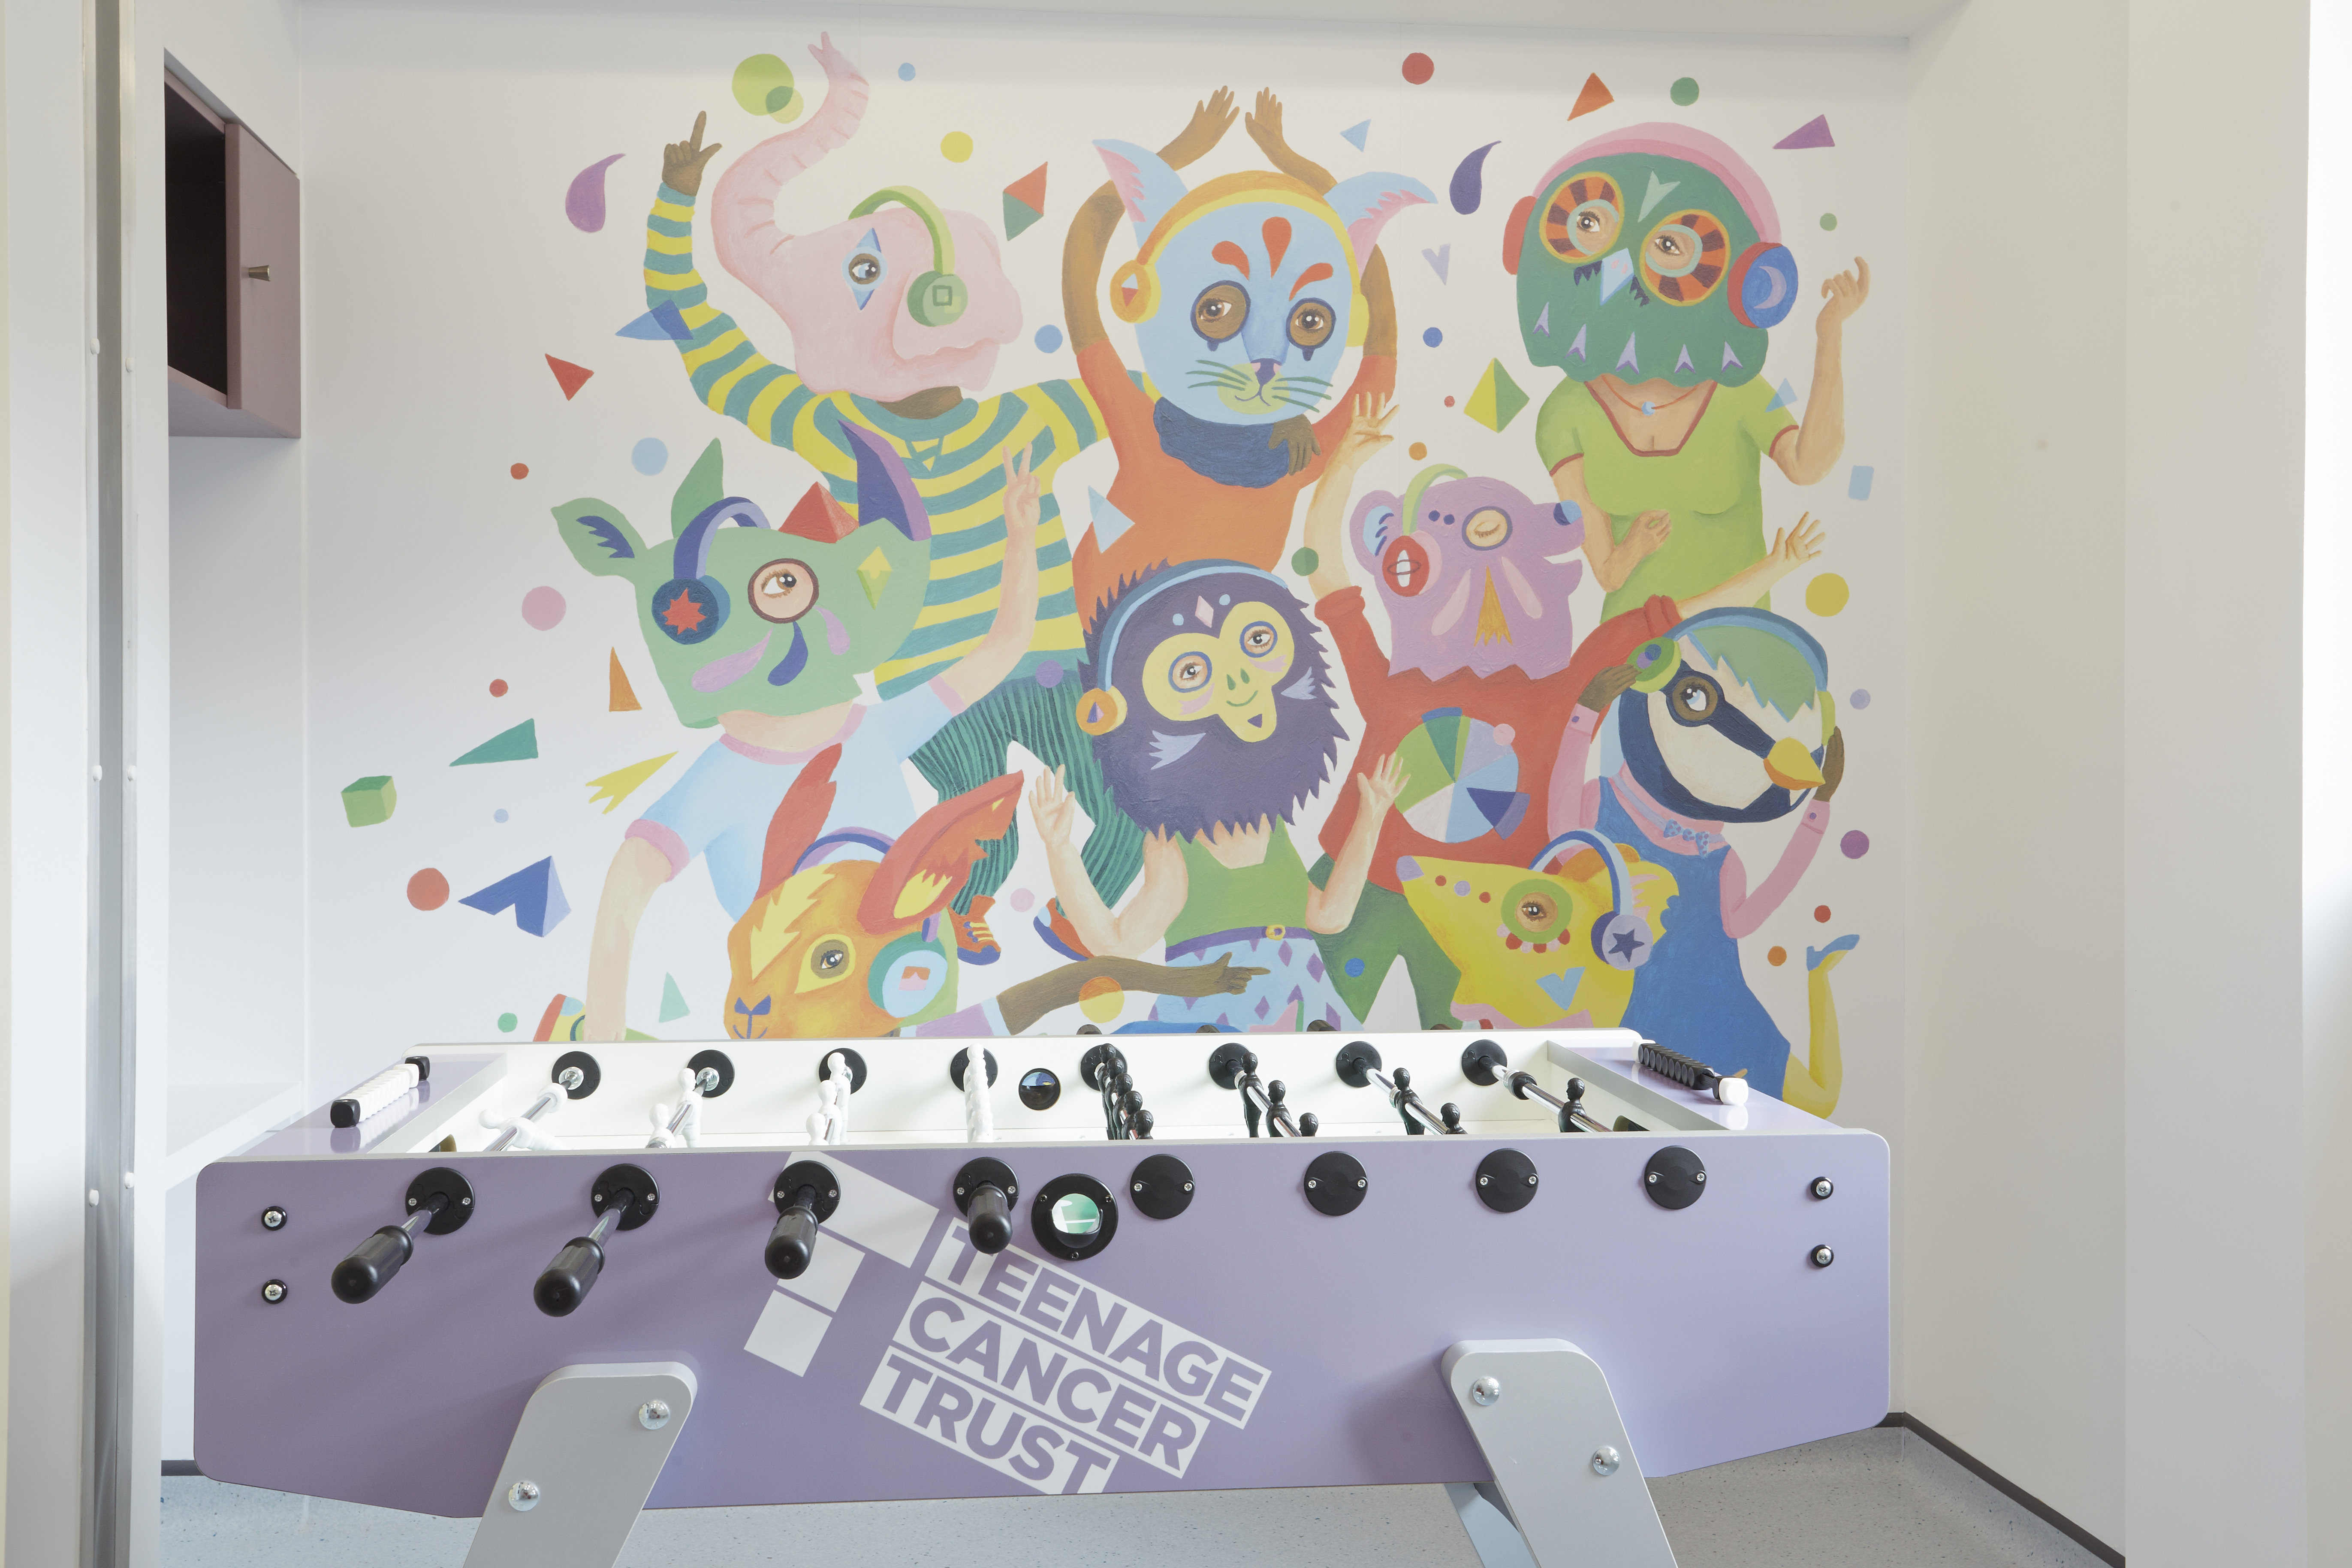 Illustrator Dave Bain created a colourful wallwork for the social space in Teenage Cancer Trust unit